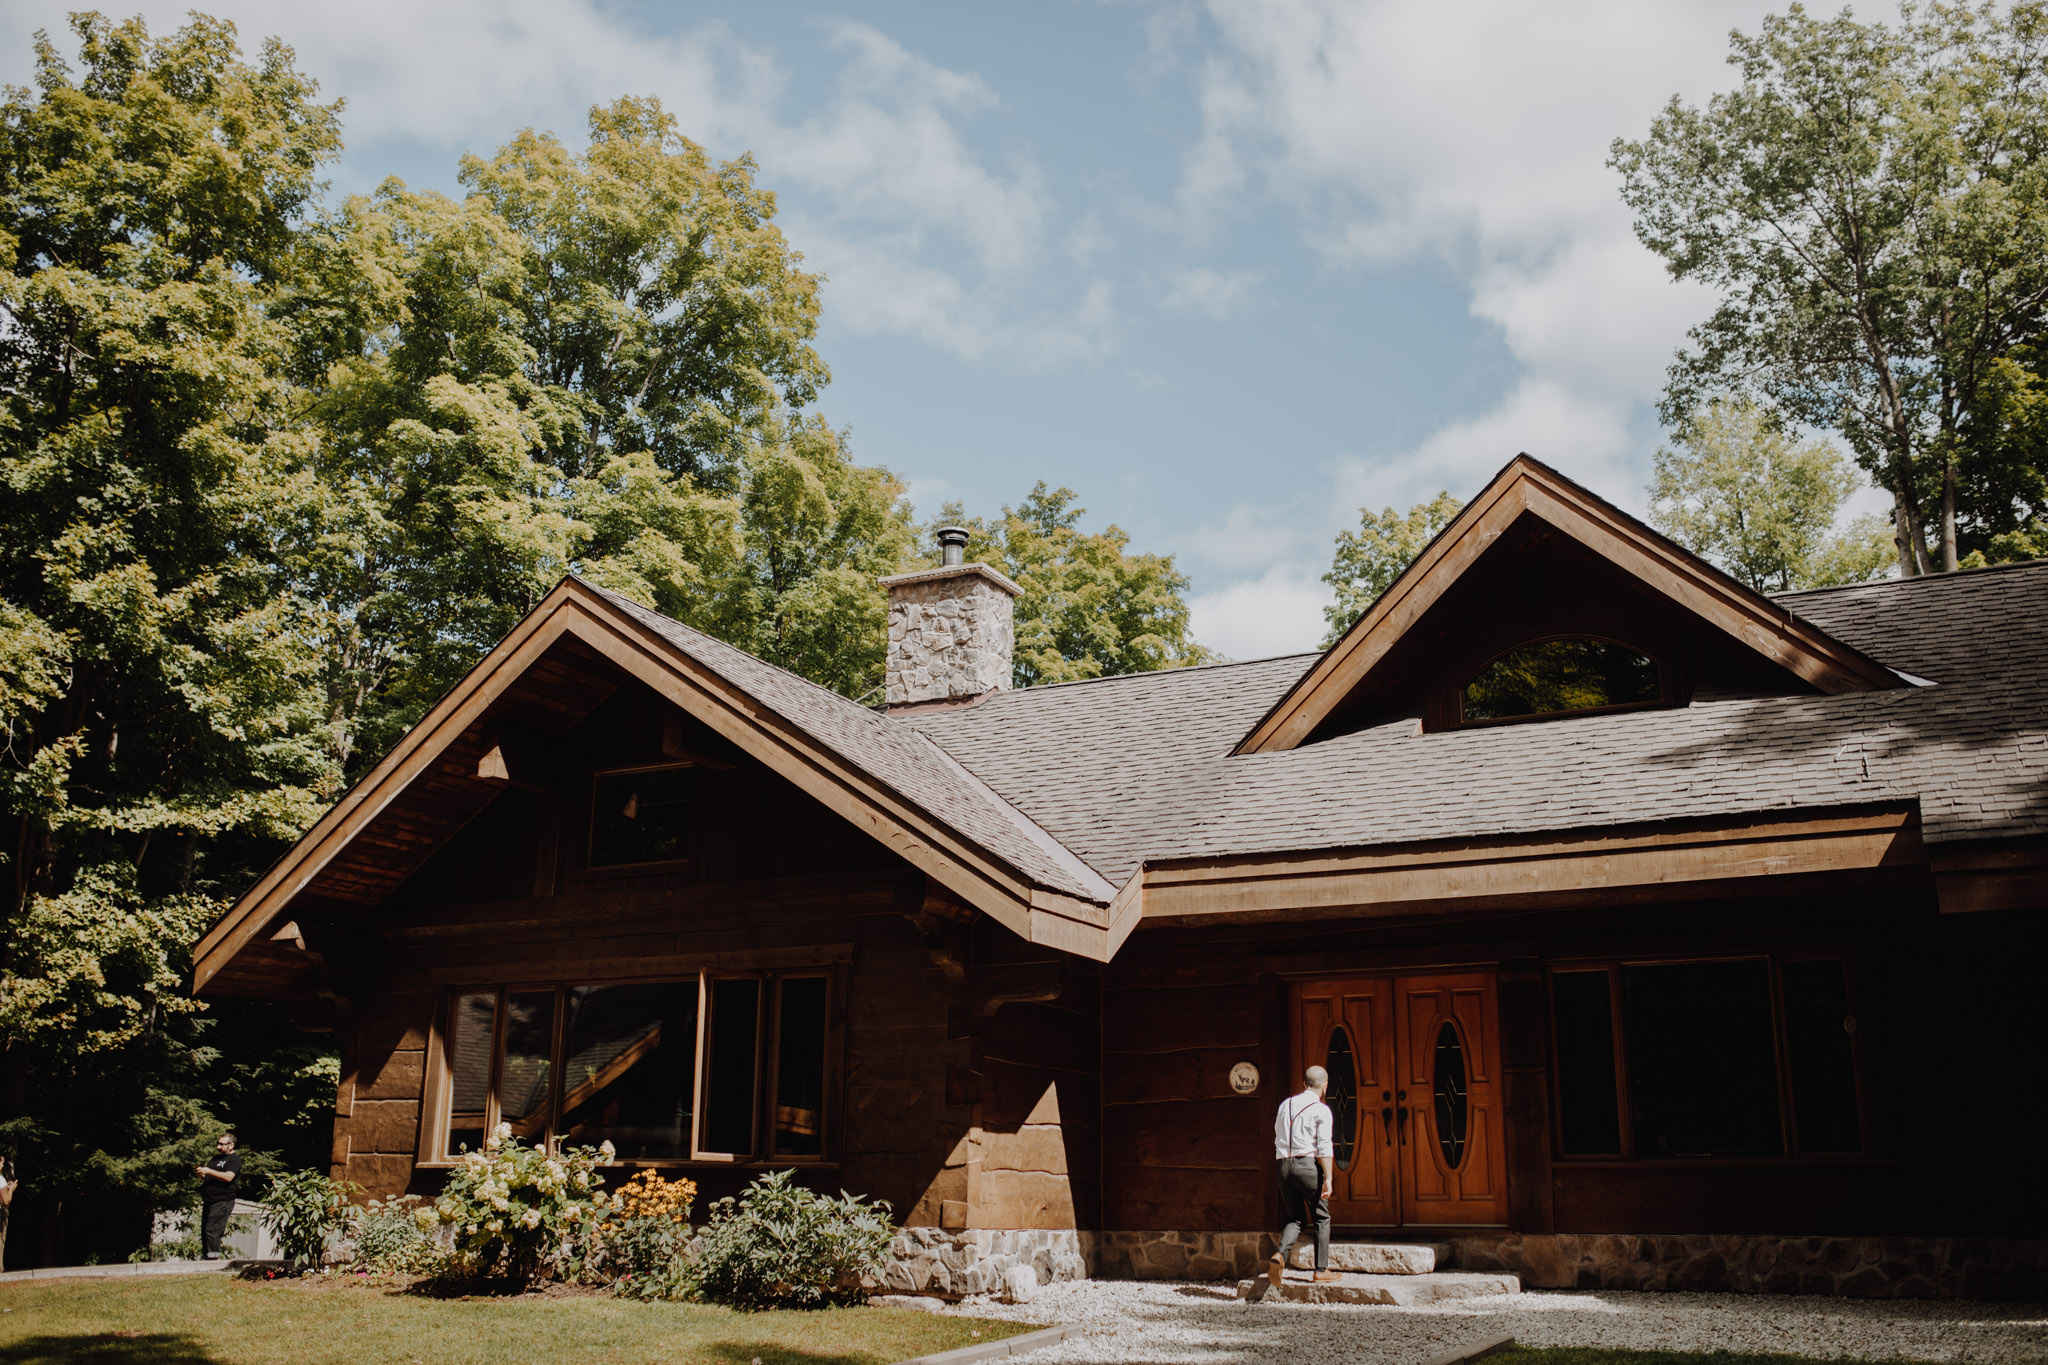 Outdoor Camp Wedding - the homestead